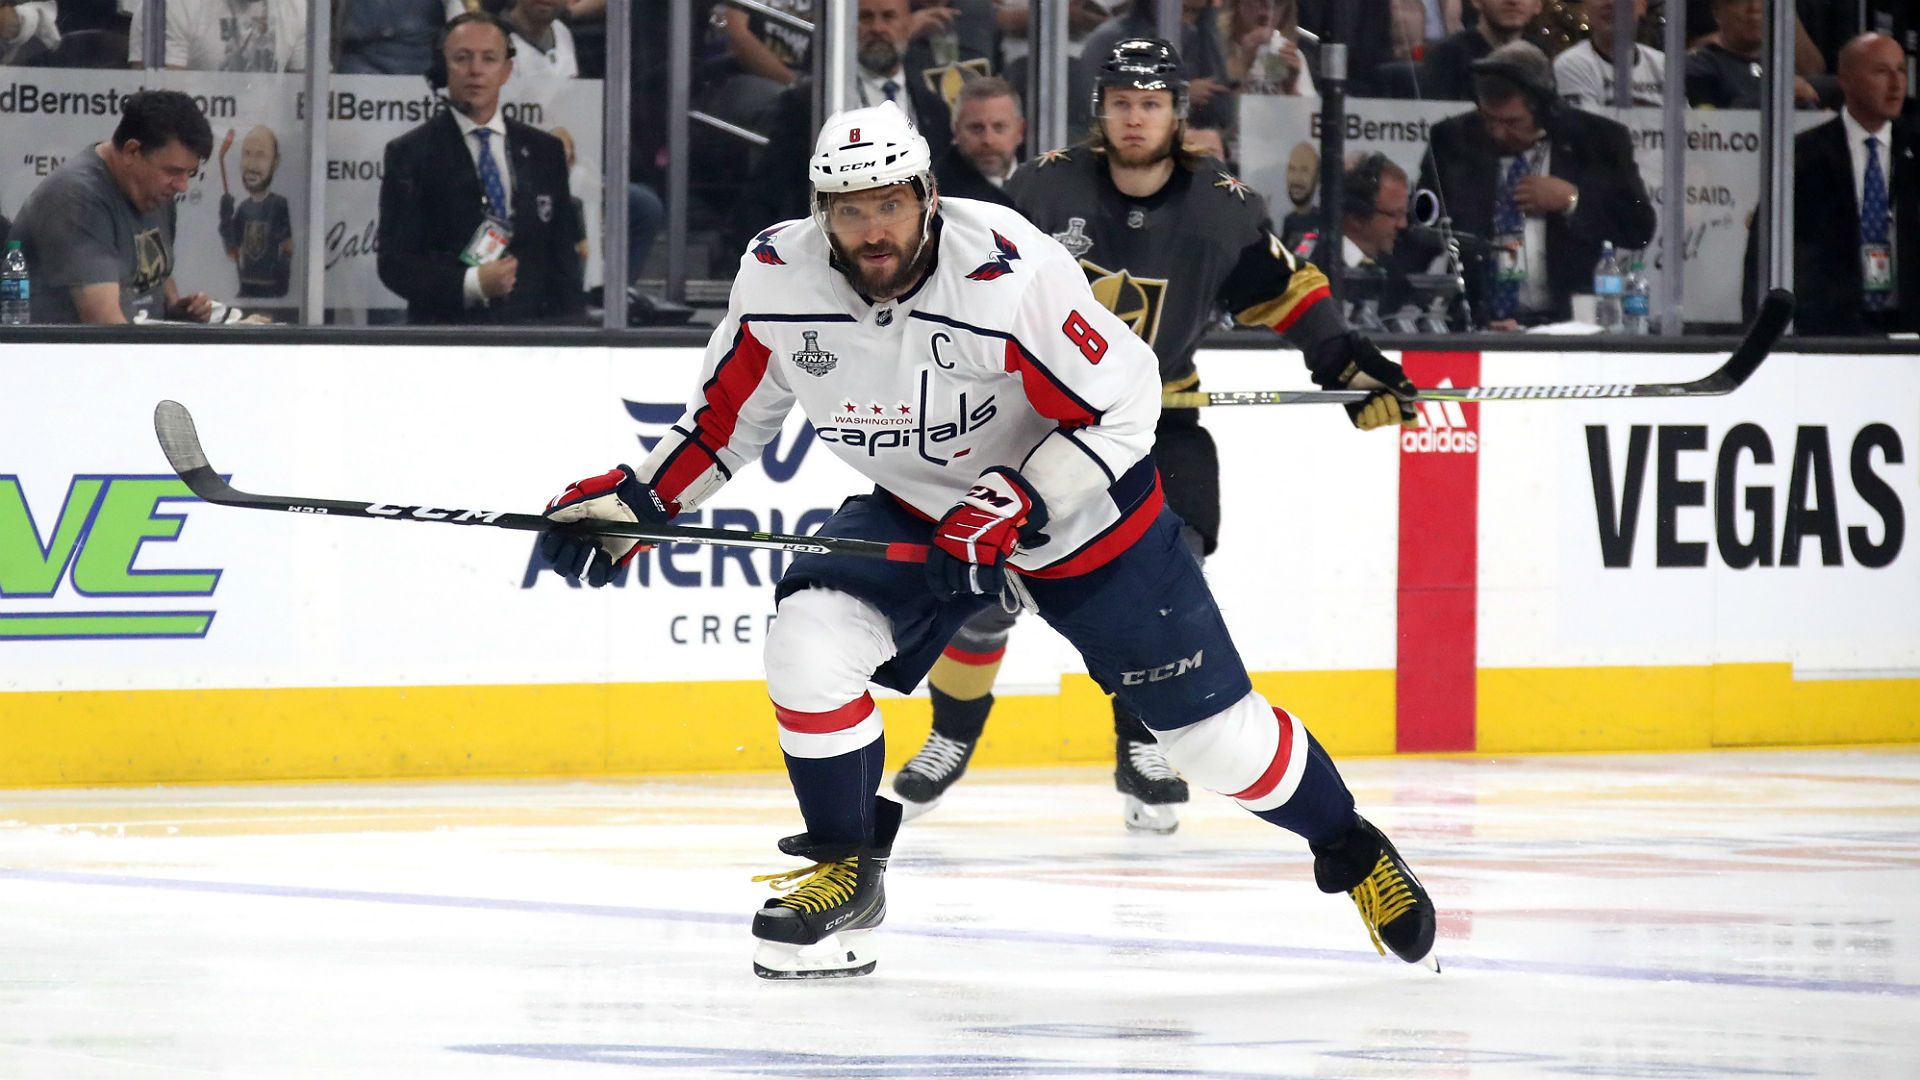 Capitals, Golden Knights Game 3 highlights